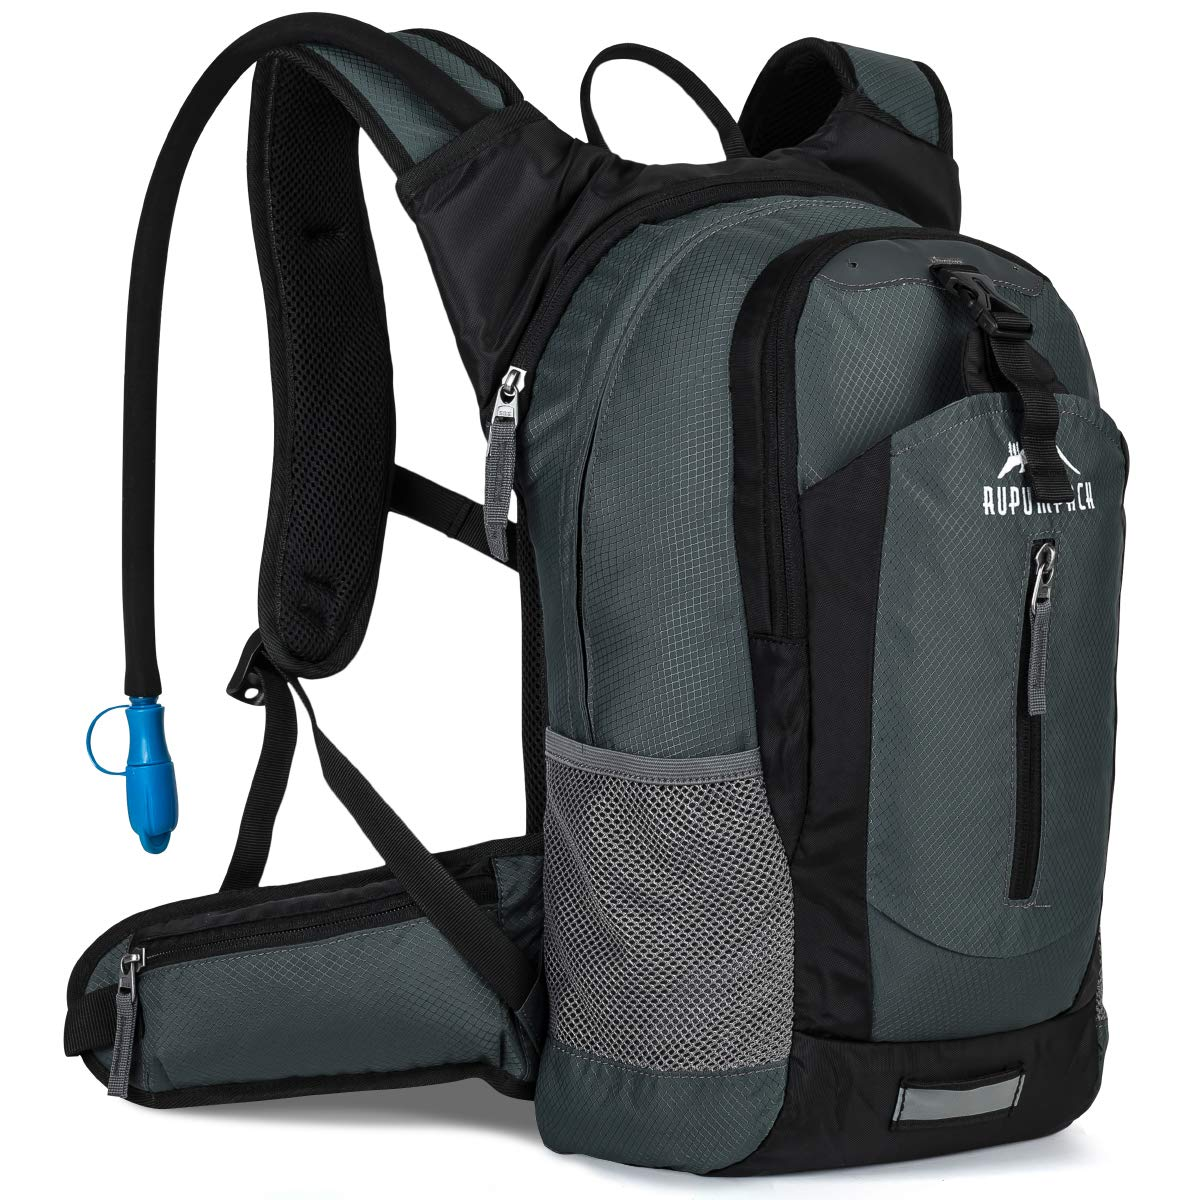 RUPUMPACK Insulated Hydration Backpack Pack with 2.5L BPA Free Bladder - Keeps Liquid Cool up to 4 Hours, Lightweight Daypack Water Backpack for Hiking Running Cycling Camping, 18L by RUPUMPACK